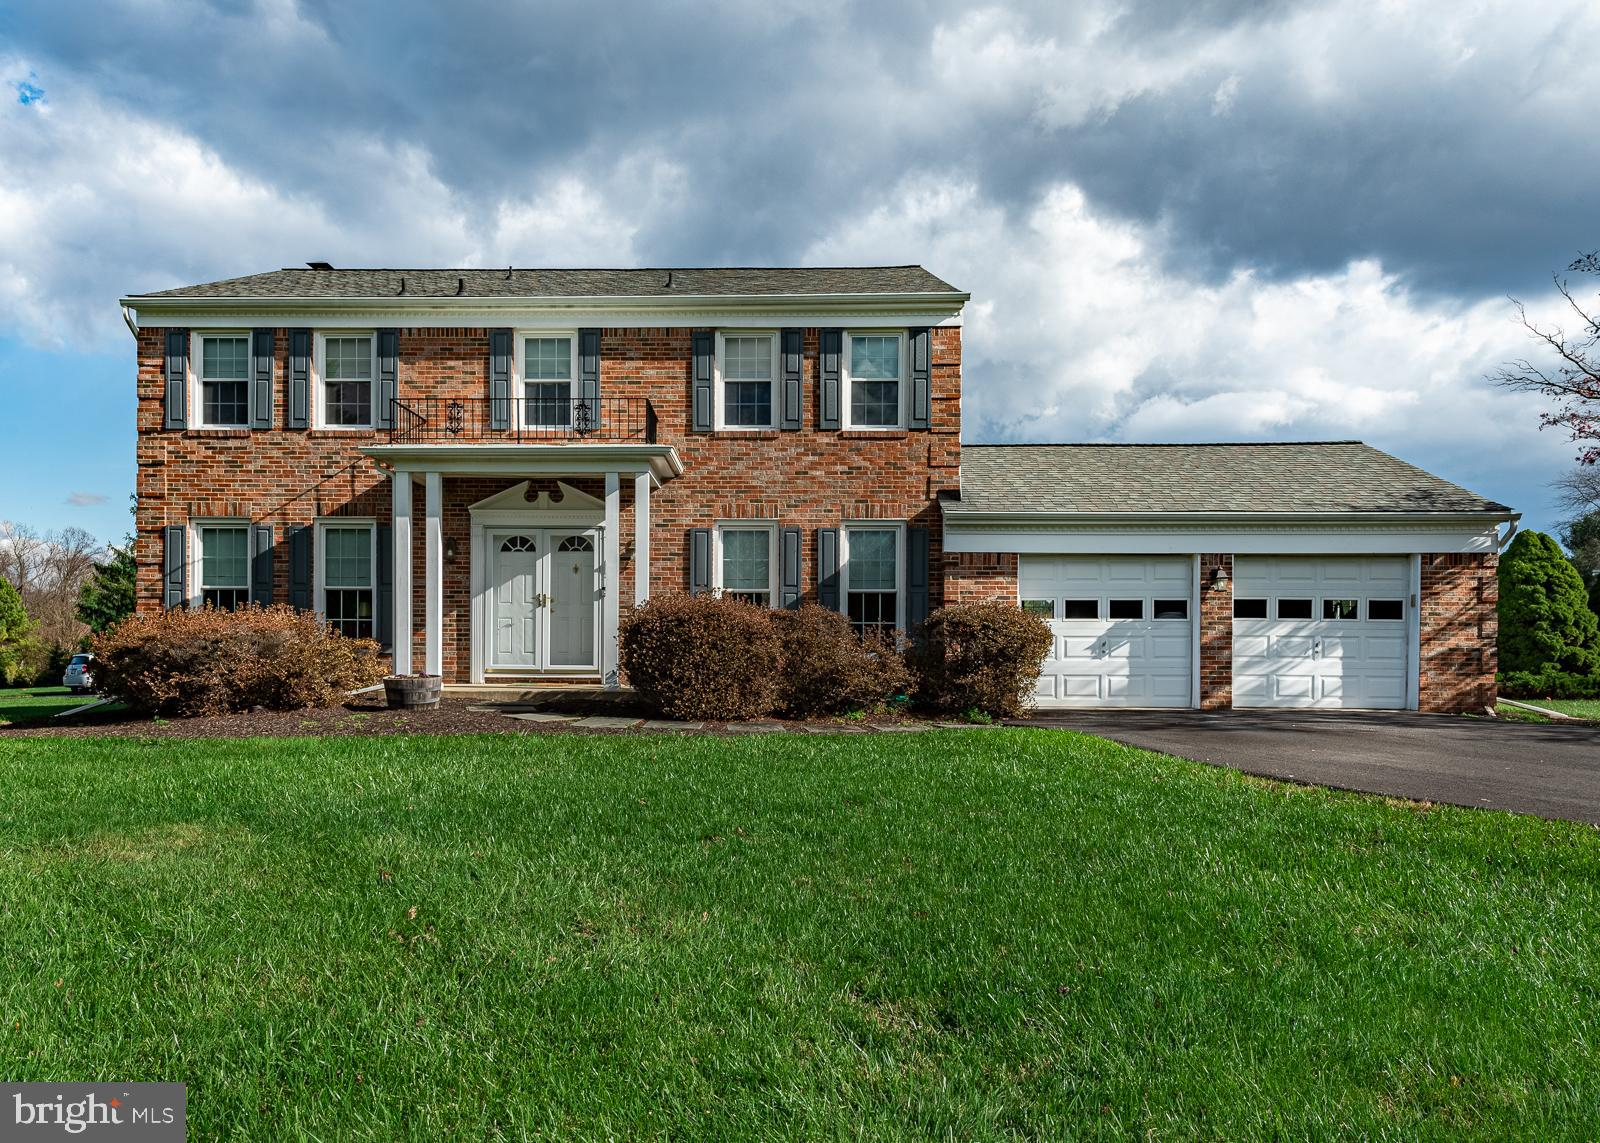 Nestled in the small subdivision of 23 homes of Wesly Hills in Clarksville on a sloping knoll, is th